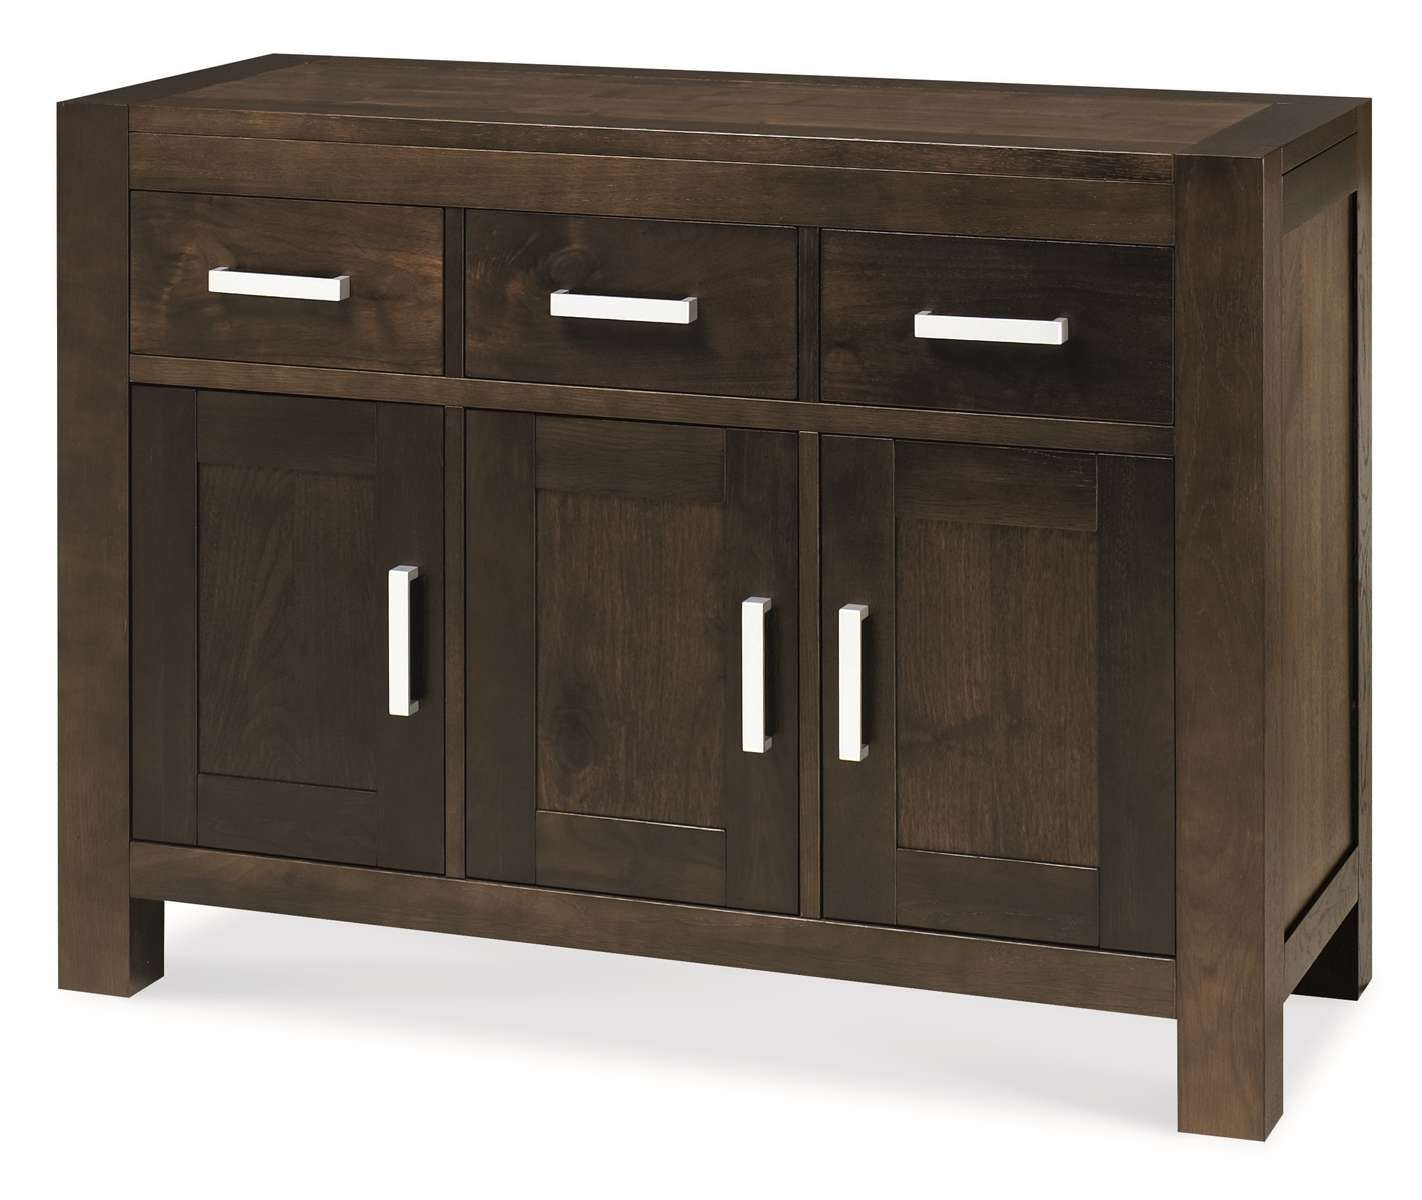 Dining Room Furniture / Furniture Store In Leicester | World Of Within Small Narrow Sideboards (View 5 of 20)